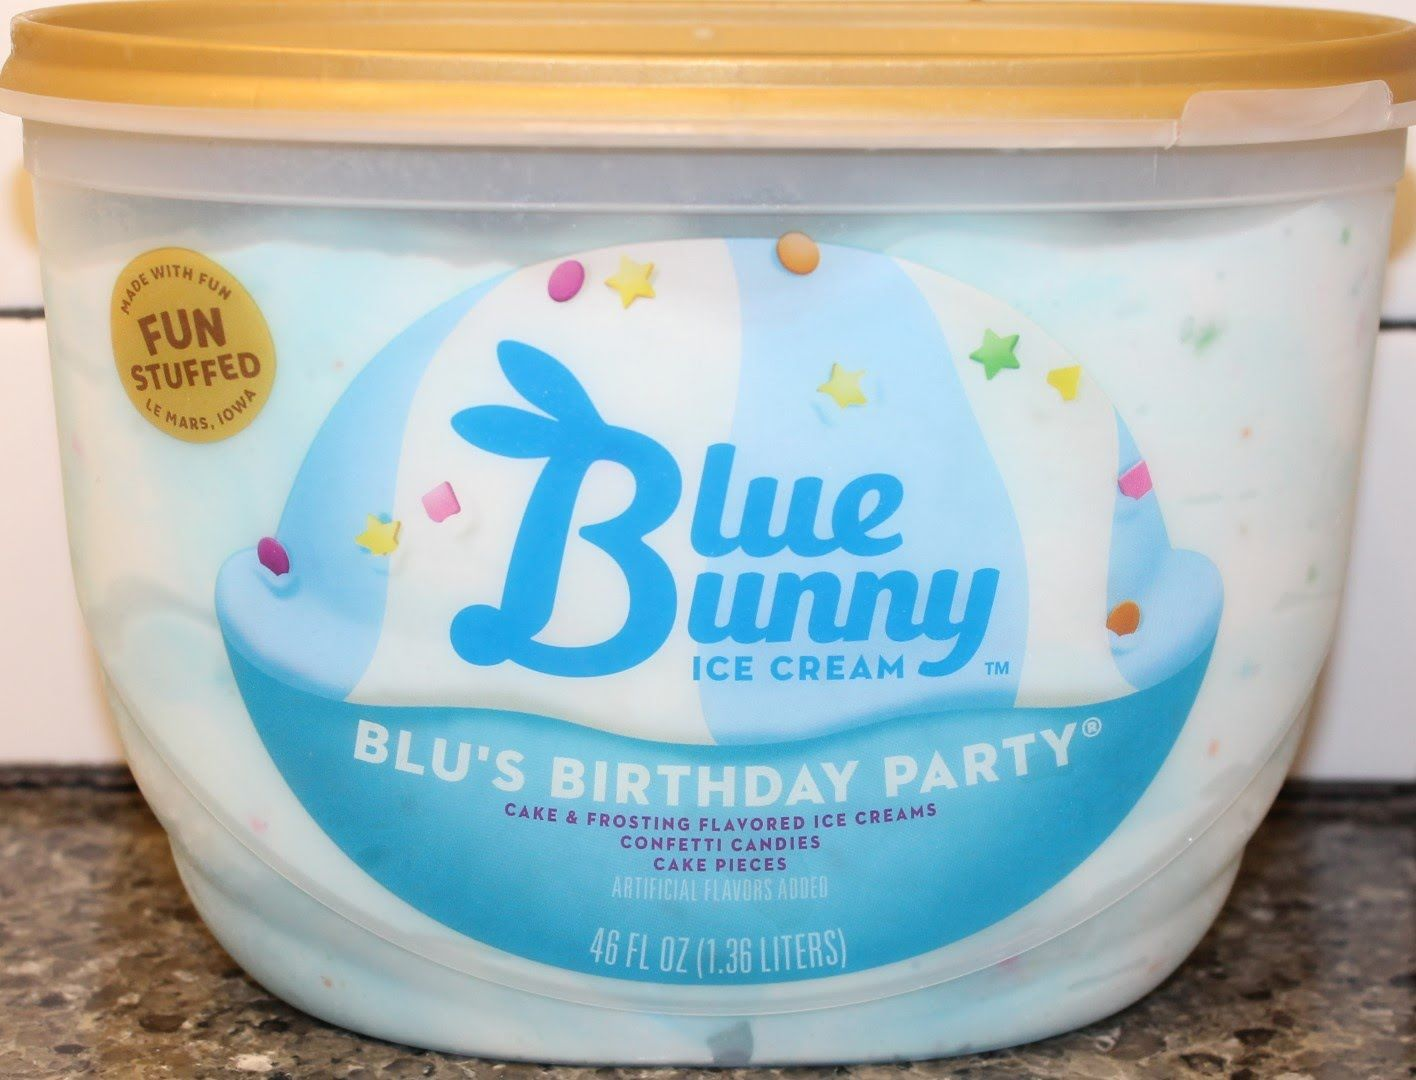 Blue Bunny Ice Cream Blus Birthday Party Review